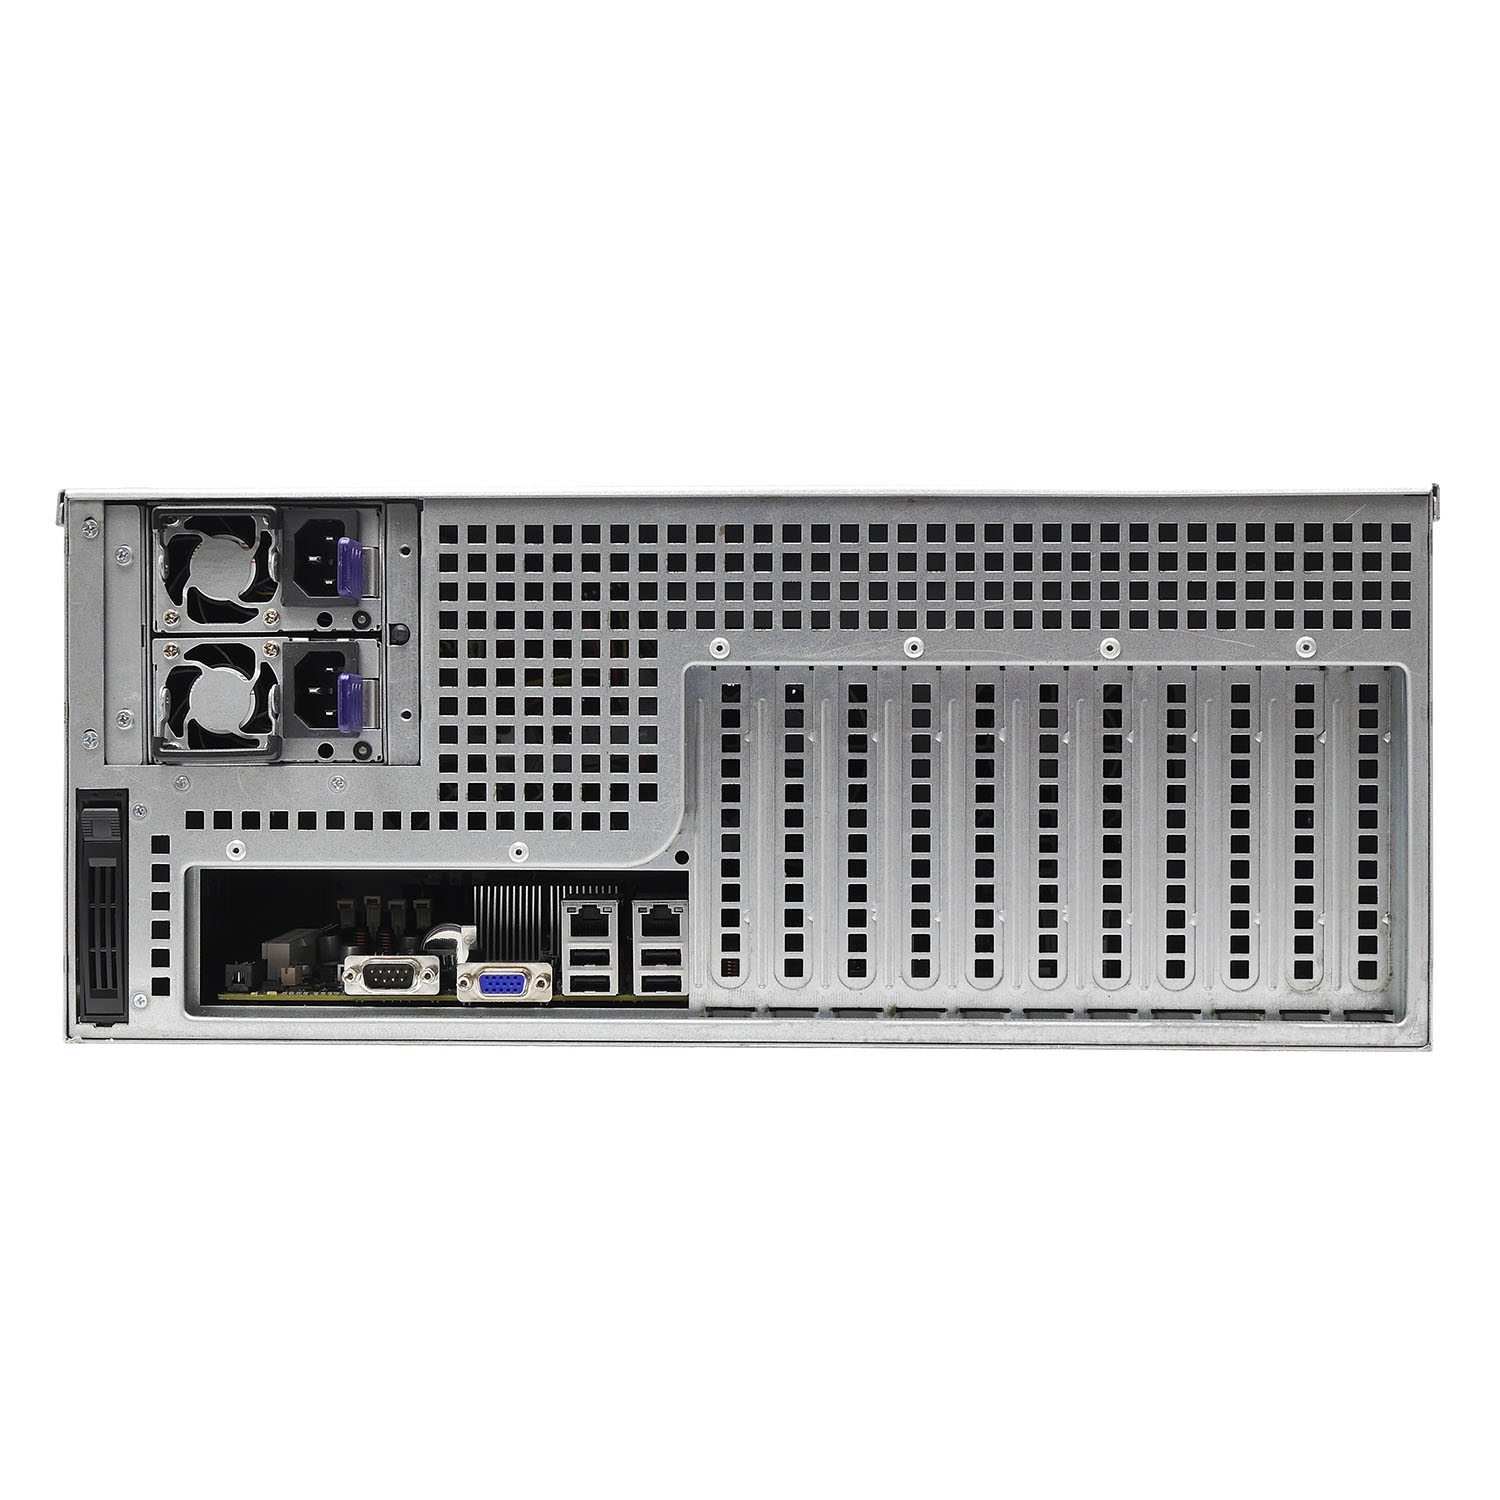 "Серверный корпус 4U NR-R4149 Hot Swap 49x 2.5"" SAS/SATA  (EEATX 13.68""x13"", 650mm), черный, Negorack"